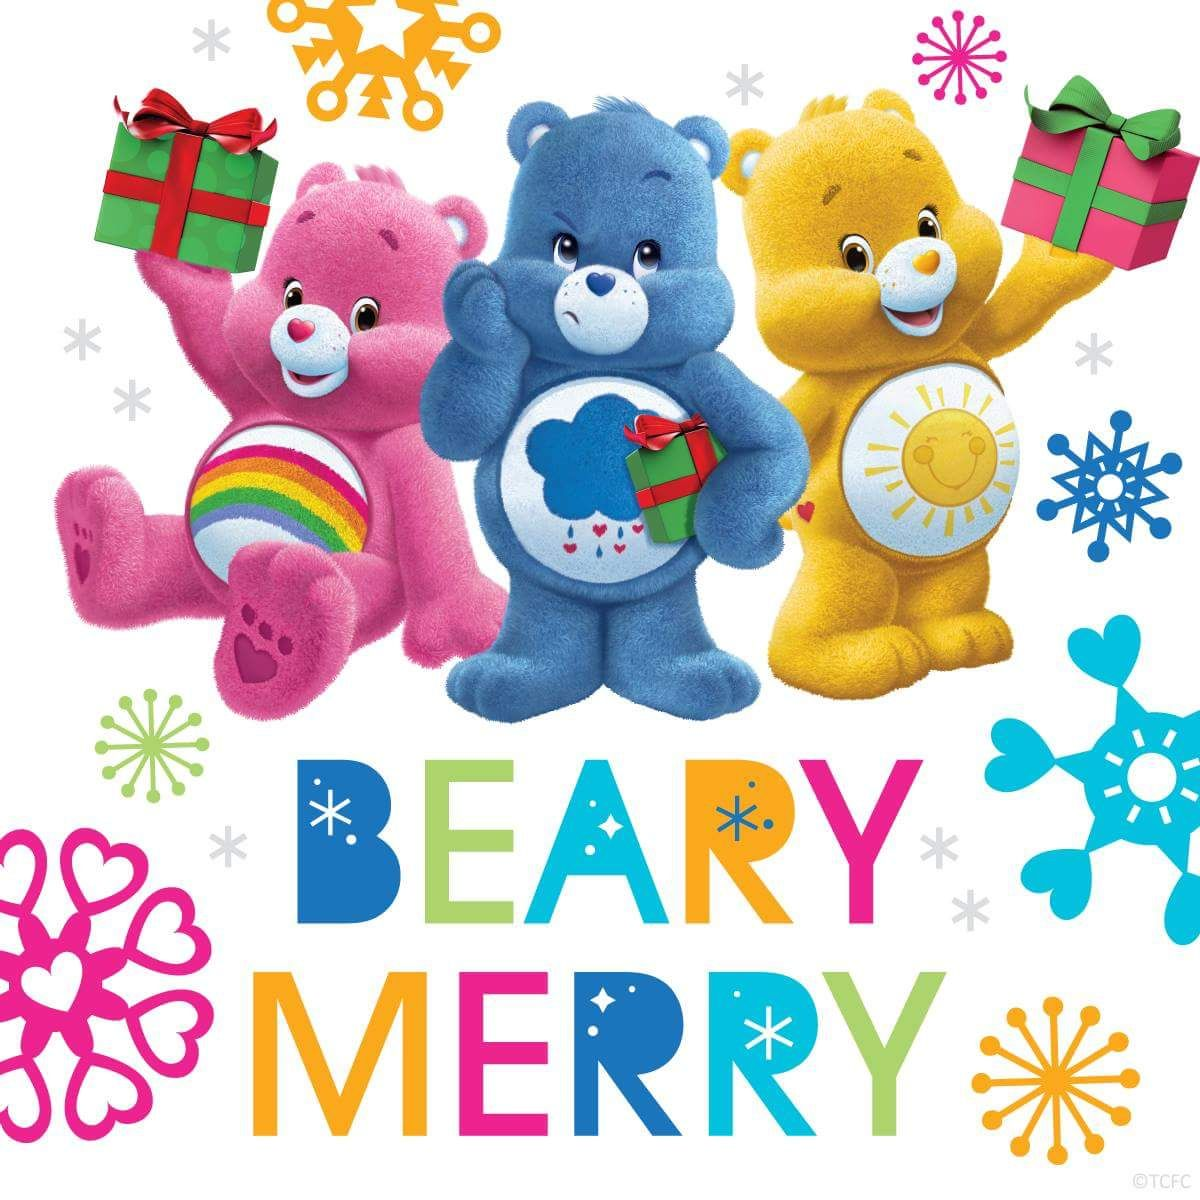 Pin By Leslie Orchard On Care Bears In